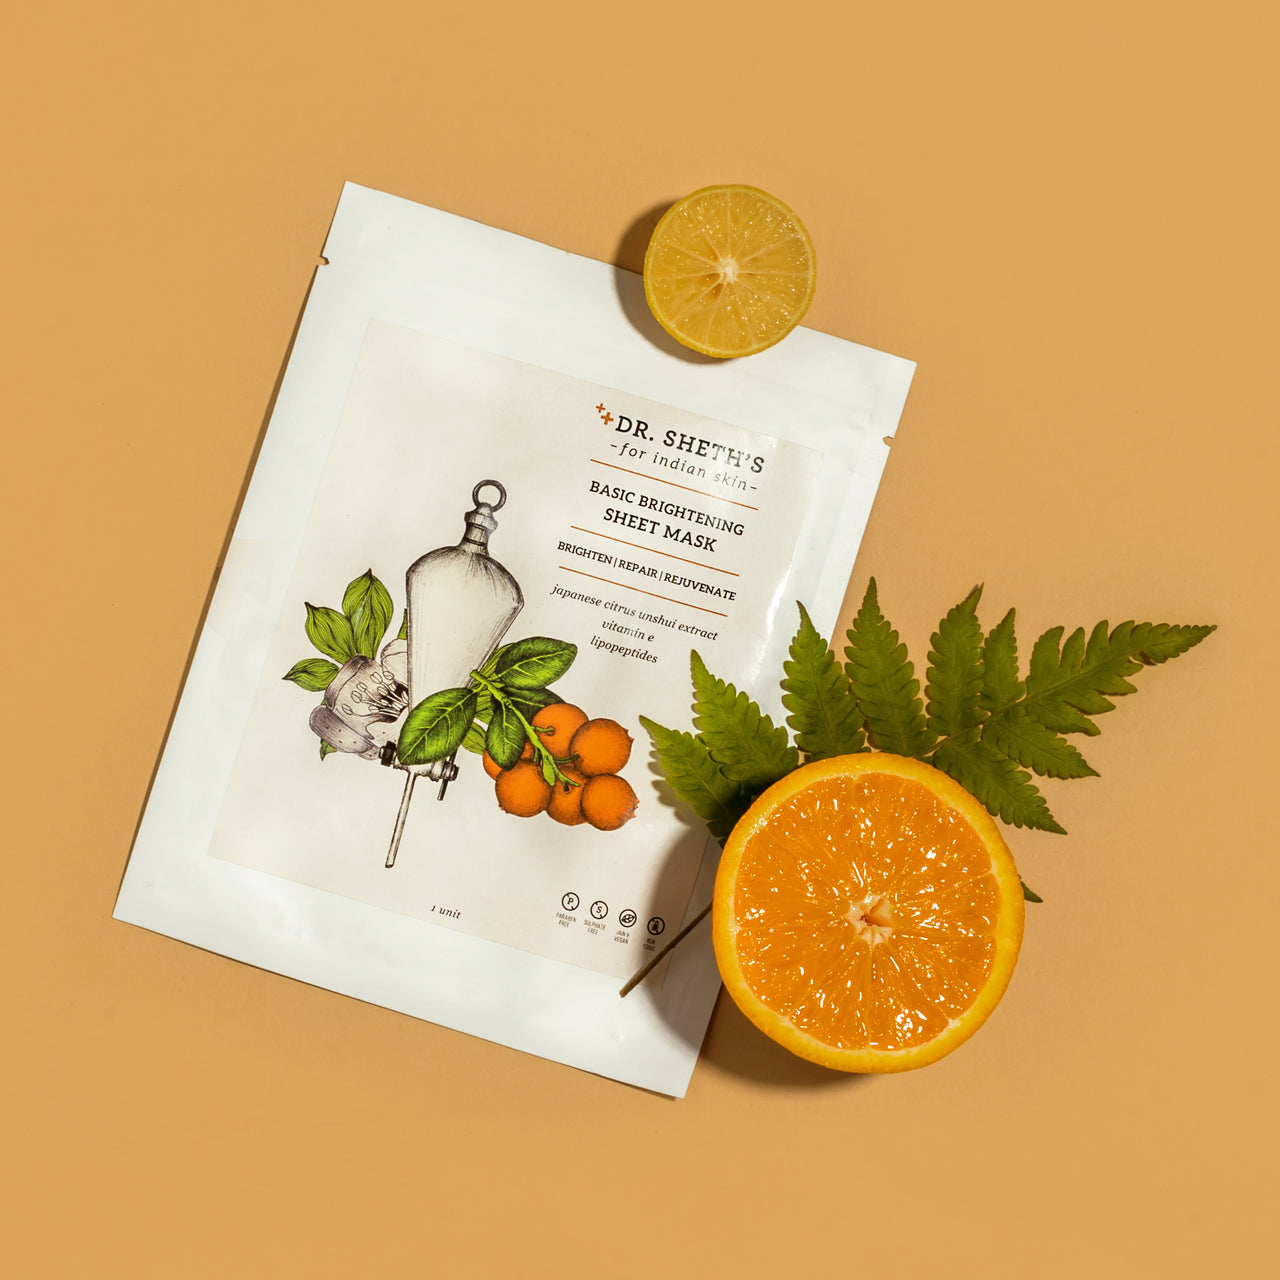 Dr. Sheth's Basic Brightening Sheet Mask - Dr. Sheth's ~ For Indian Skin